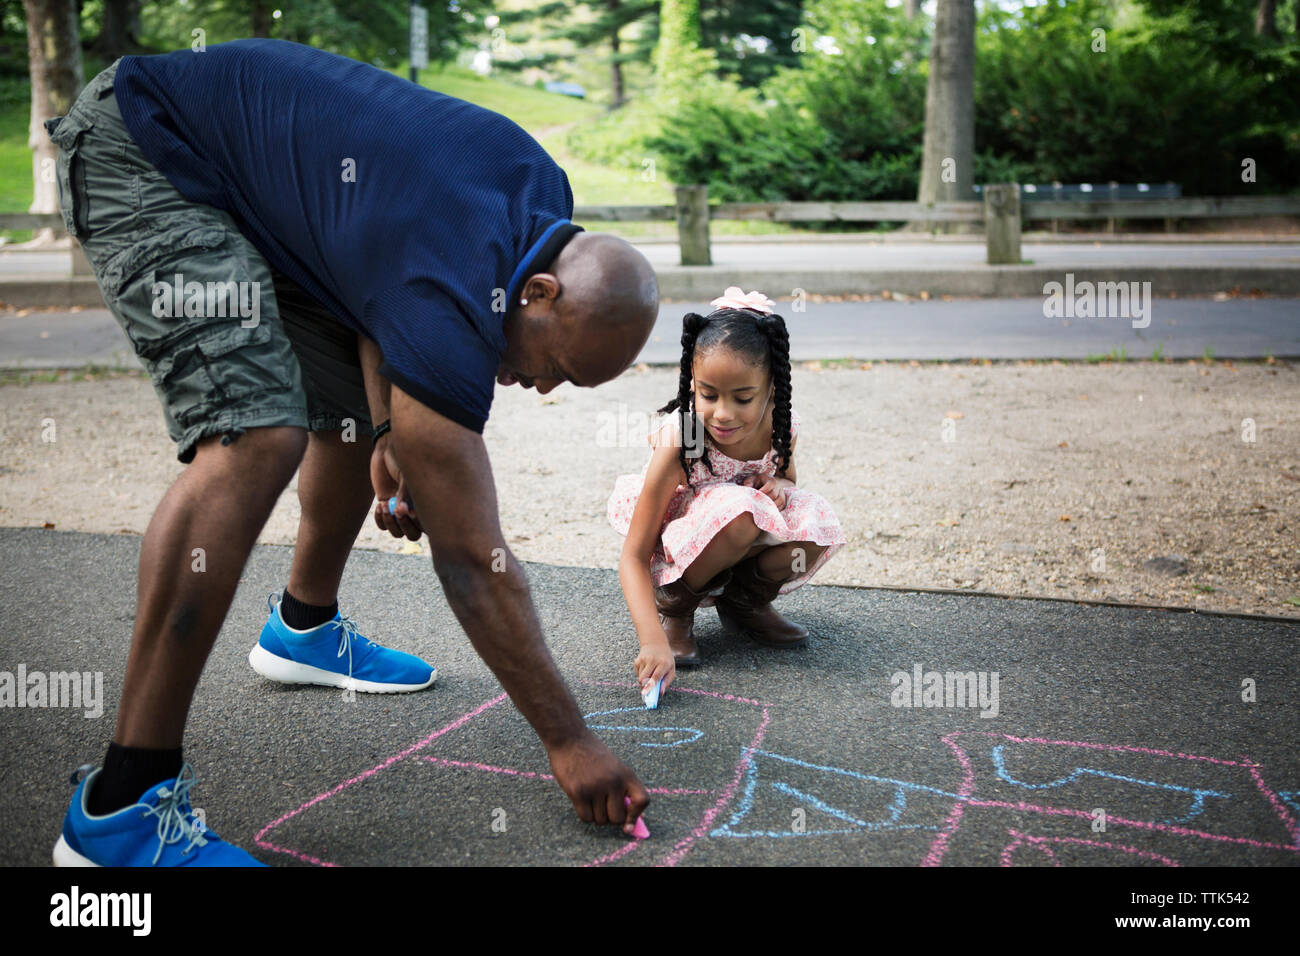 Father and daughter drawing hopscotch on road at park - Stock Image